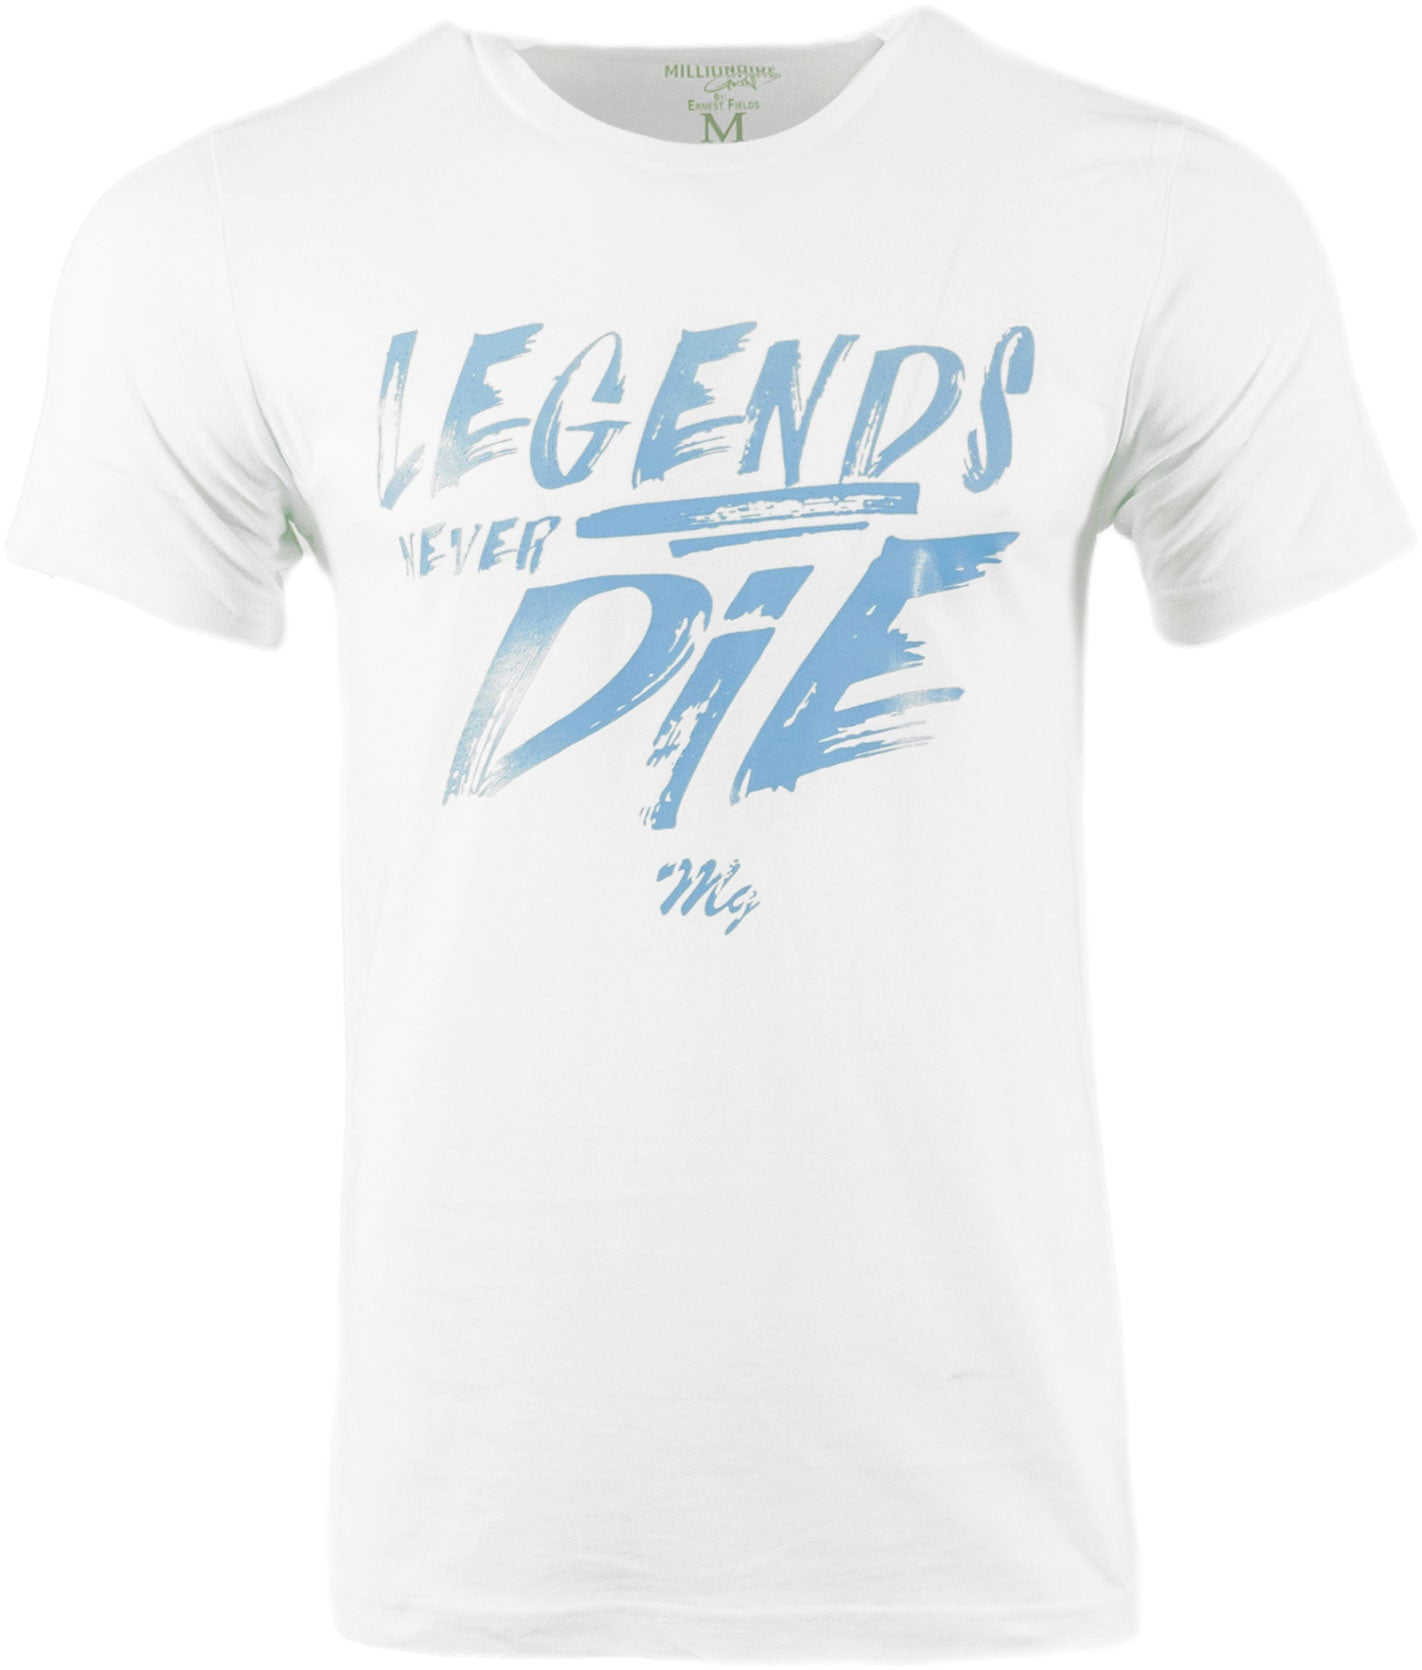 Legends Tee - (White / Carolina Blue)